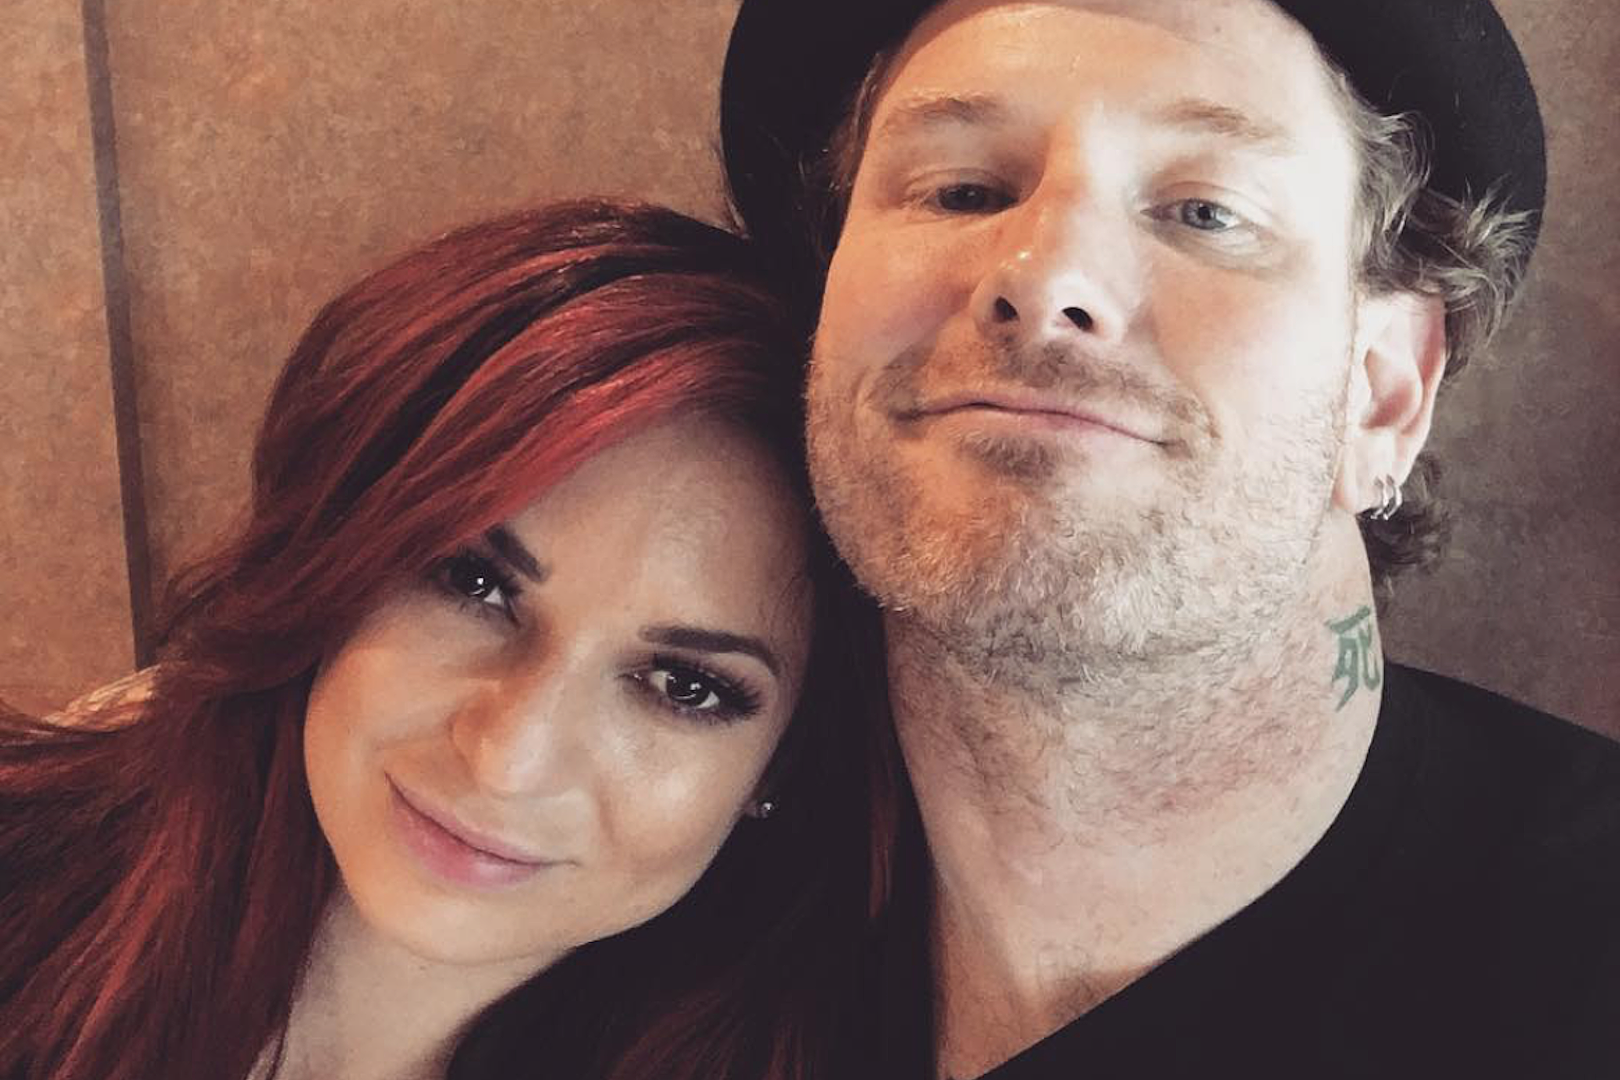 Corey Taylor Is Engaged To Alicia Dove